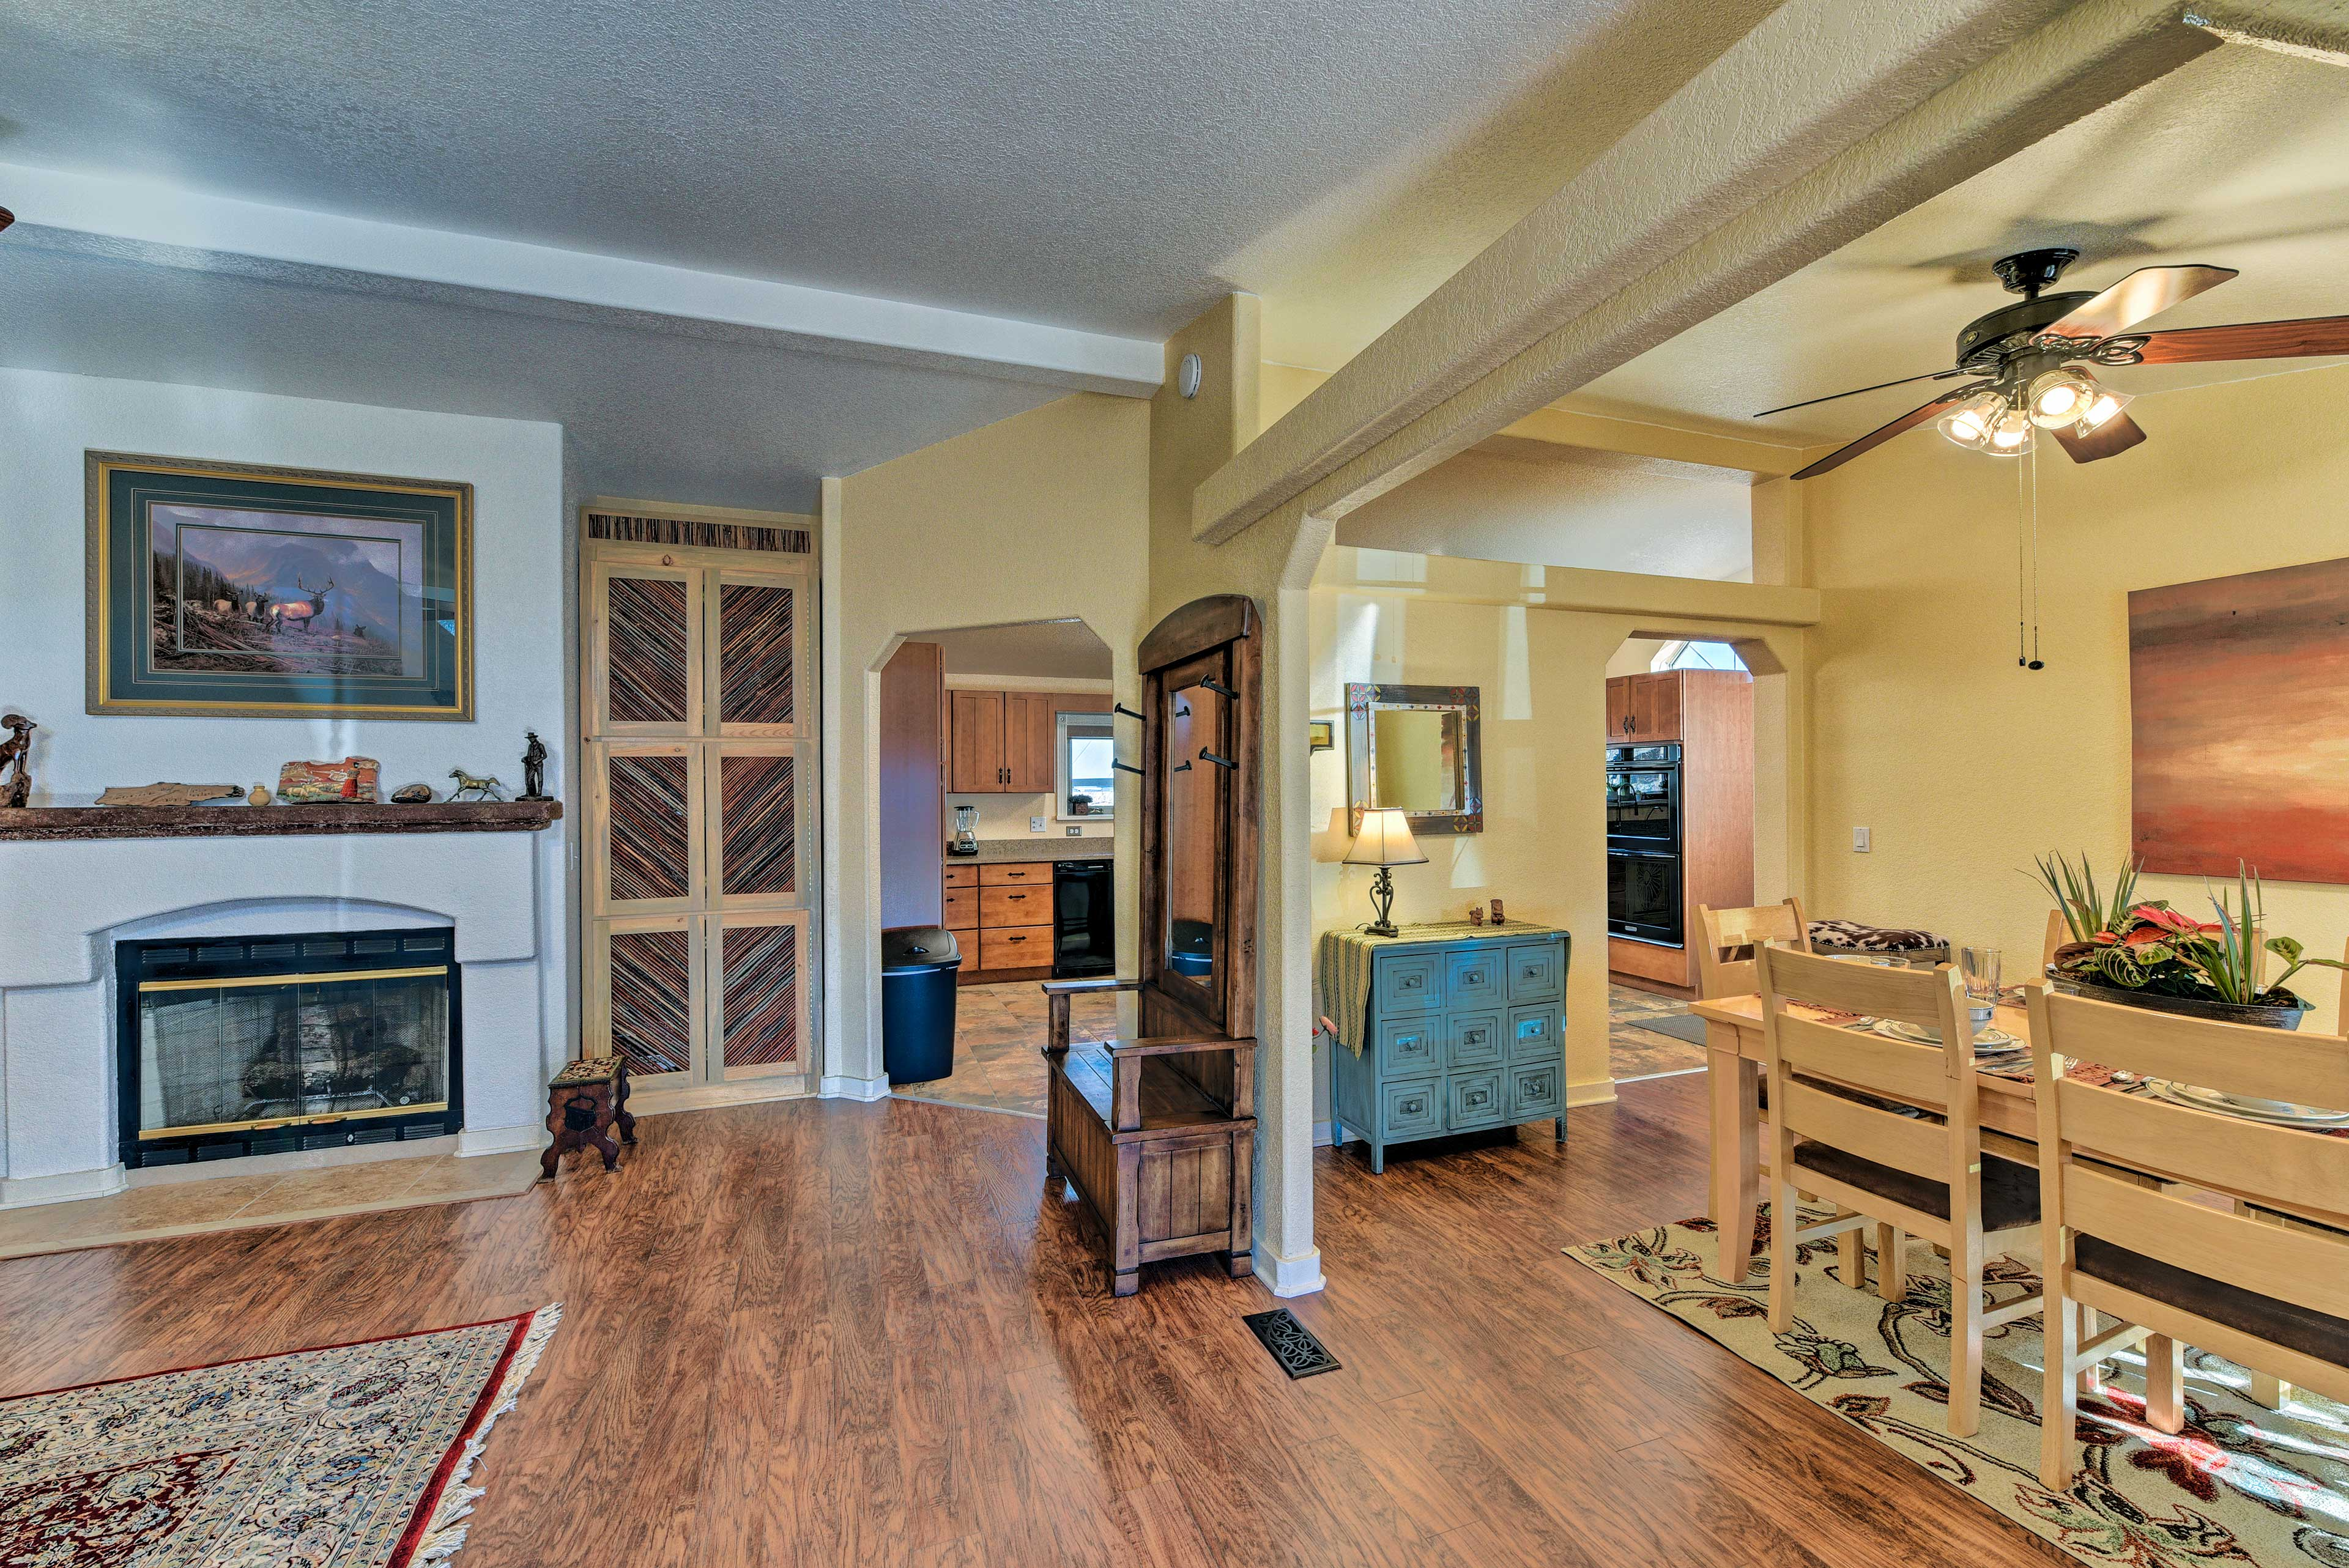 Turn on the gas fireplace to create an even more intimate ambiance!